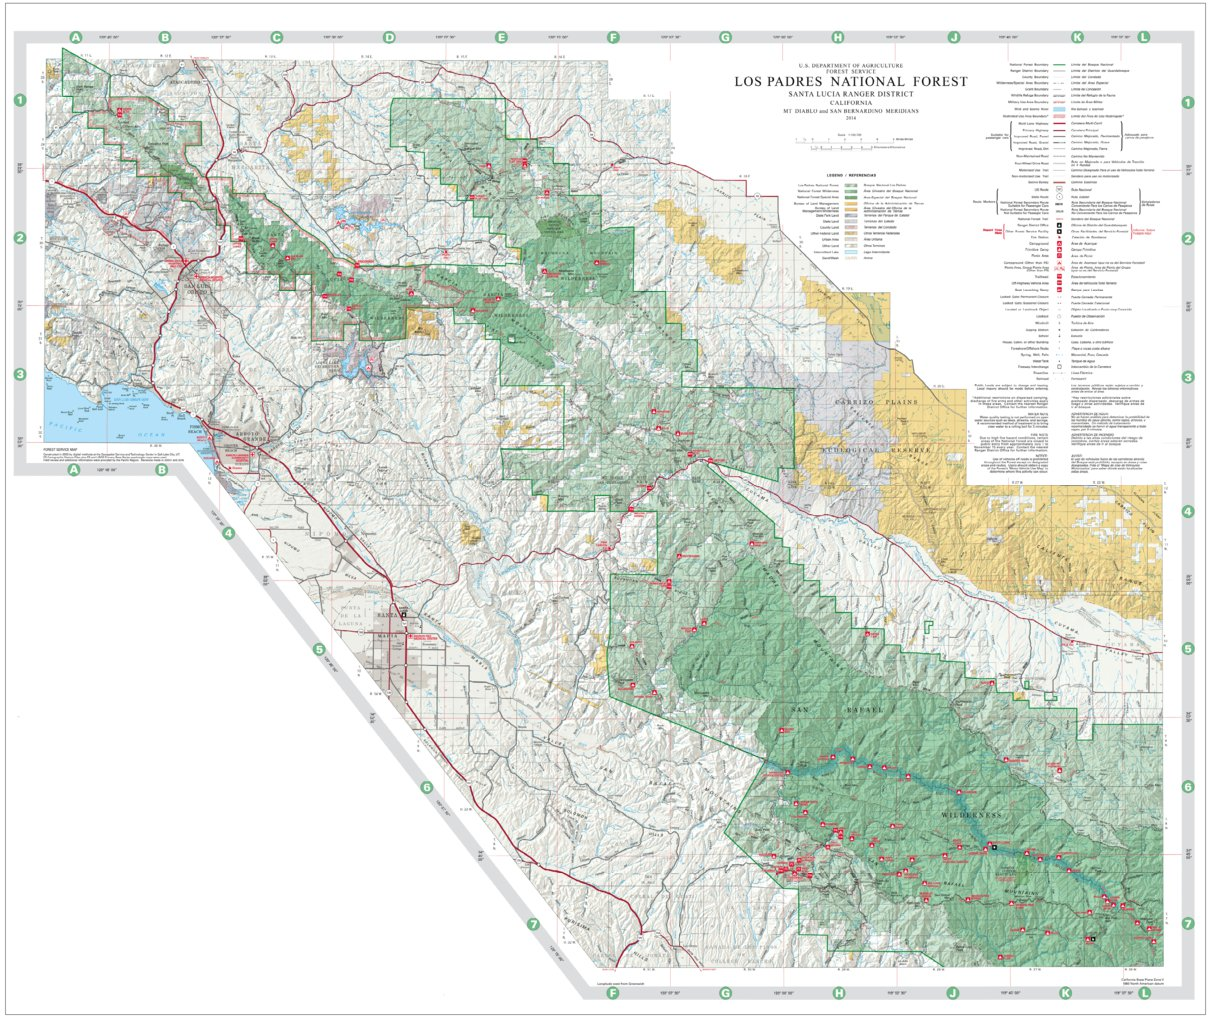 Los Padres National Forest Map Los Padres National Forest Visitor Map (Central)   US Forest